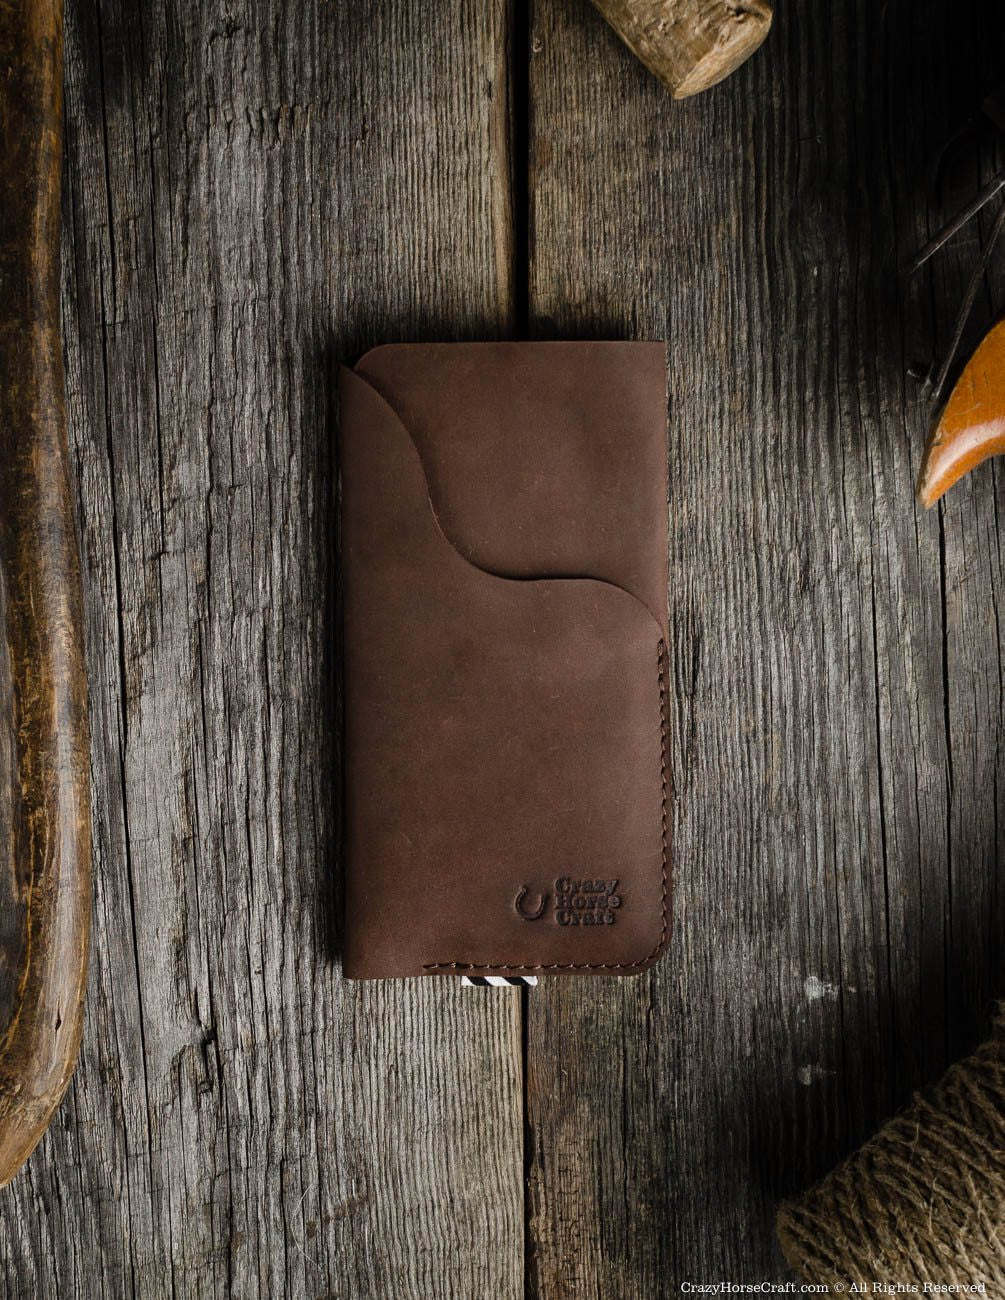 Leather iPhone Xs, iPhone Xs max sleeve, iPhone Xr cases, crazy horse wallet, Leather iPhone X Case with Card Pocket